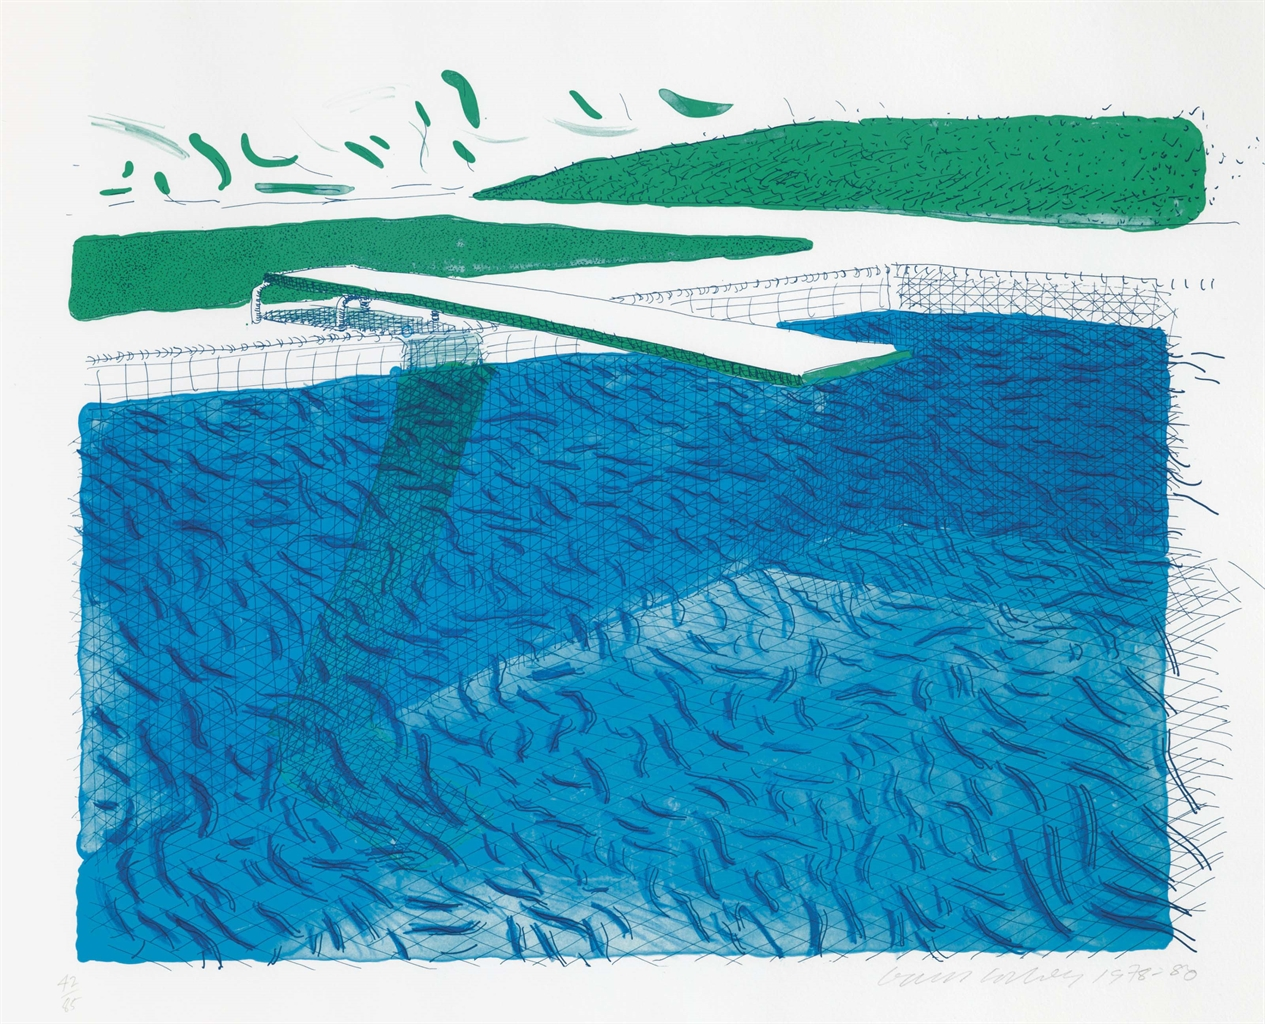 David Hockney-Lithographic Water Made Of Lines, Crayon, And Two Blue Washes-1980